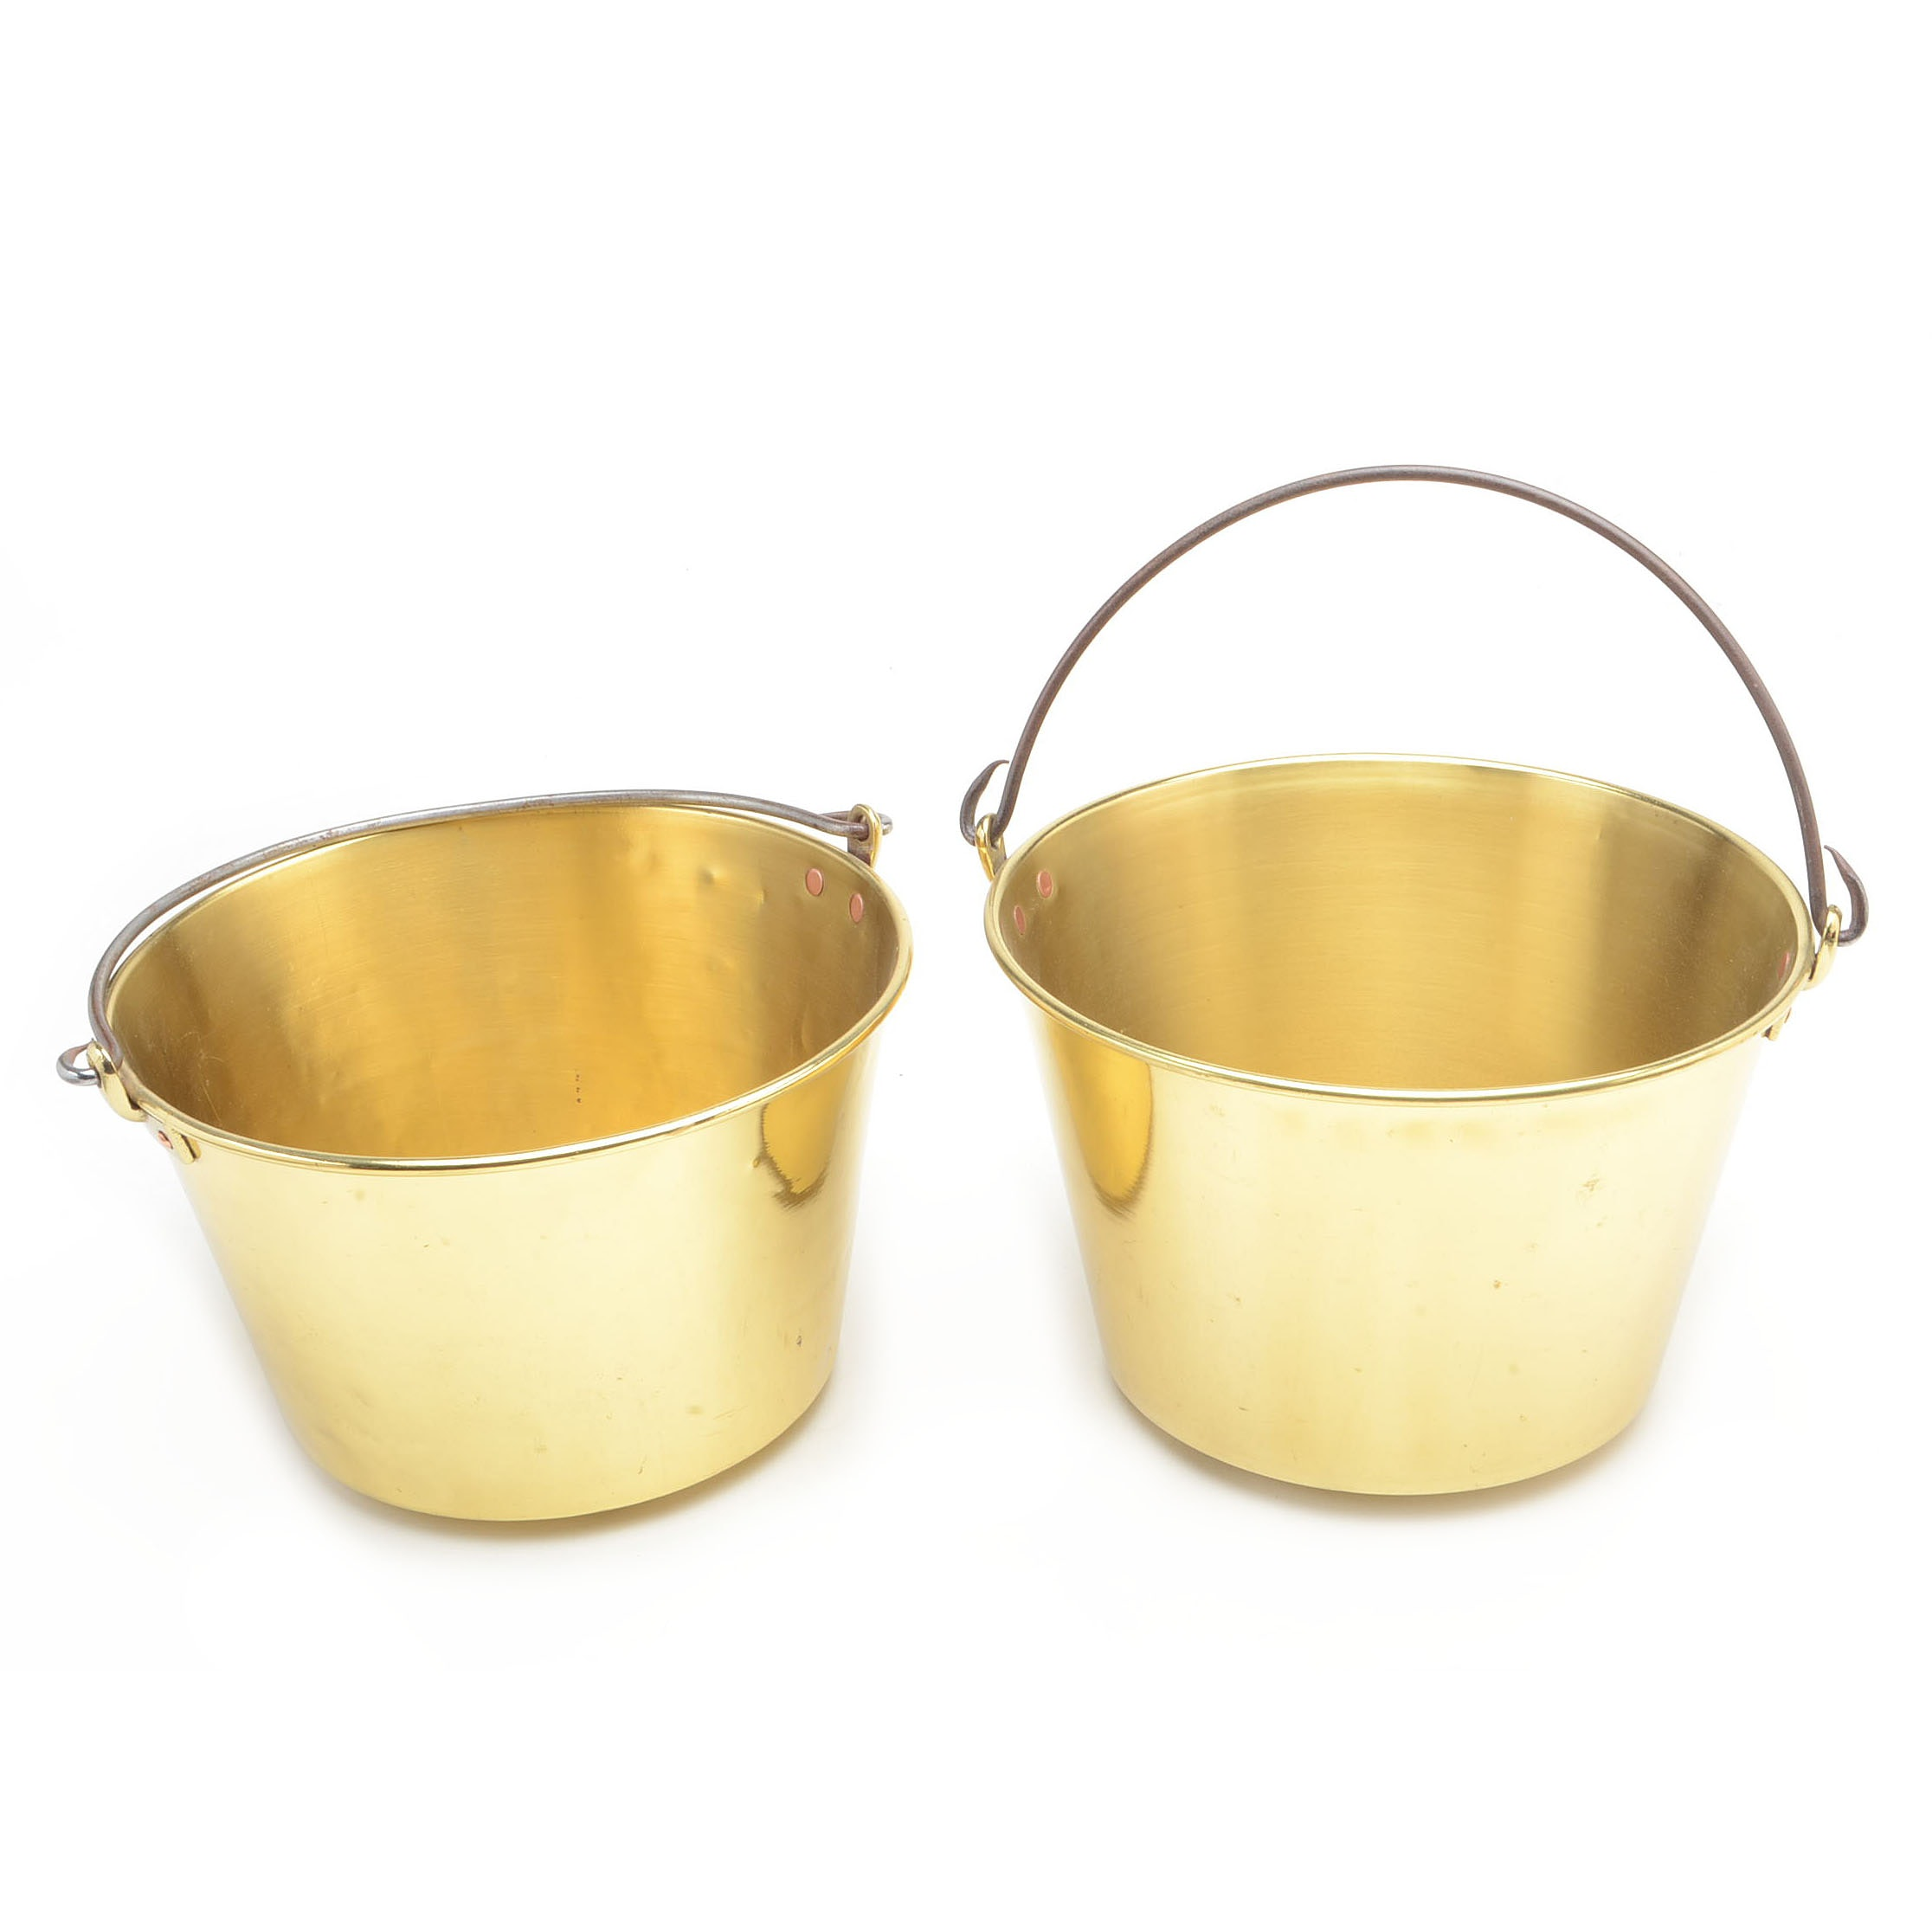 Pair of Lacquered Brass Pots